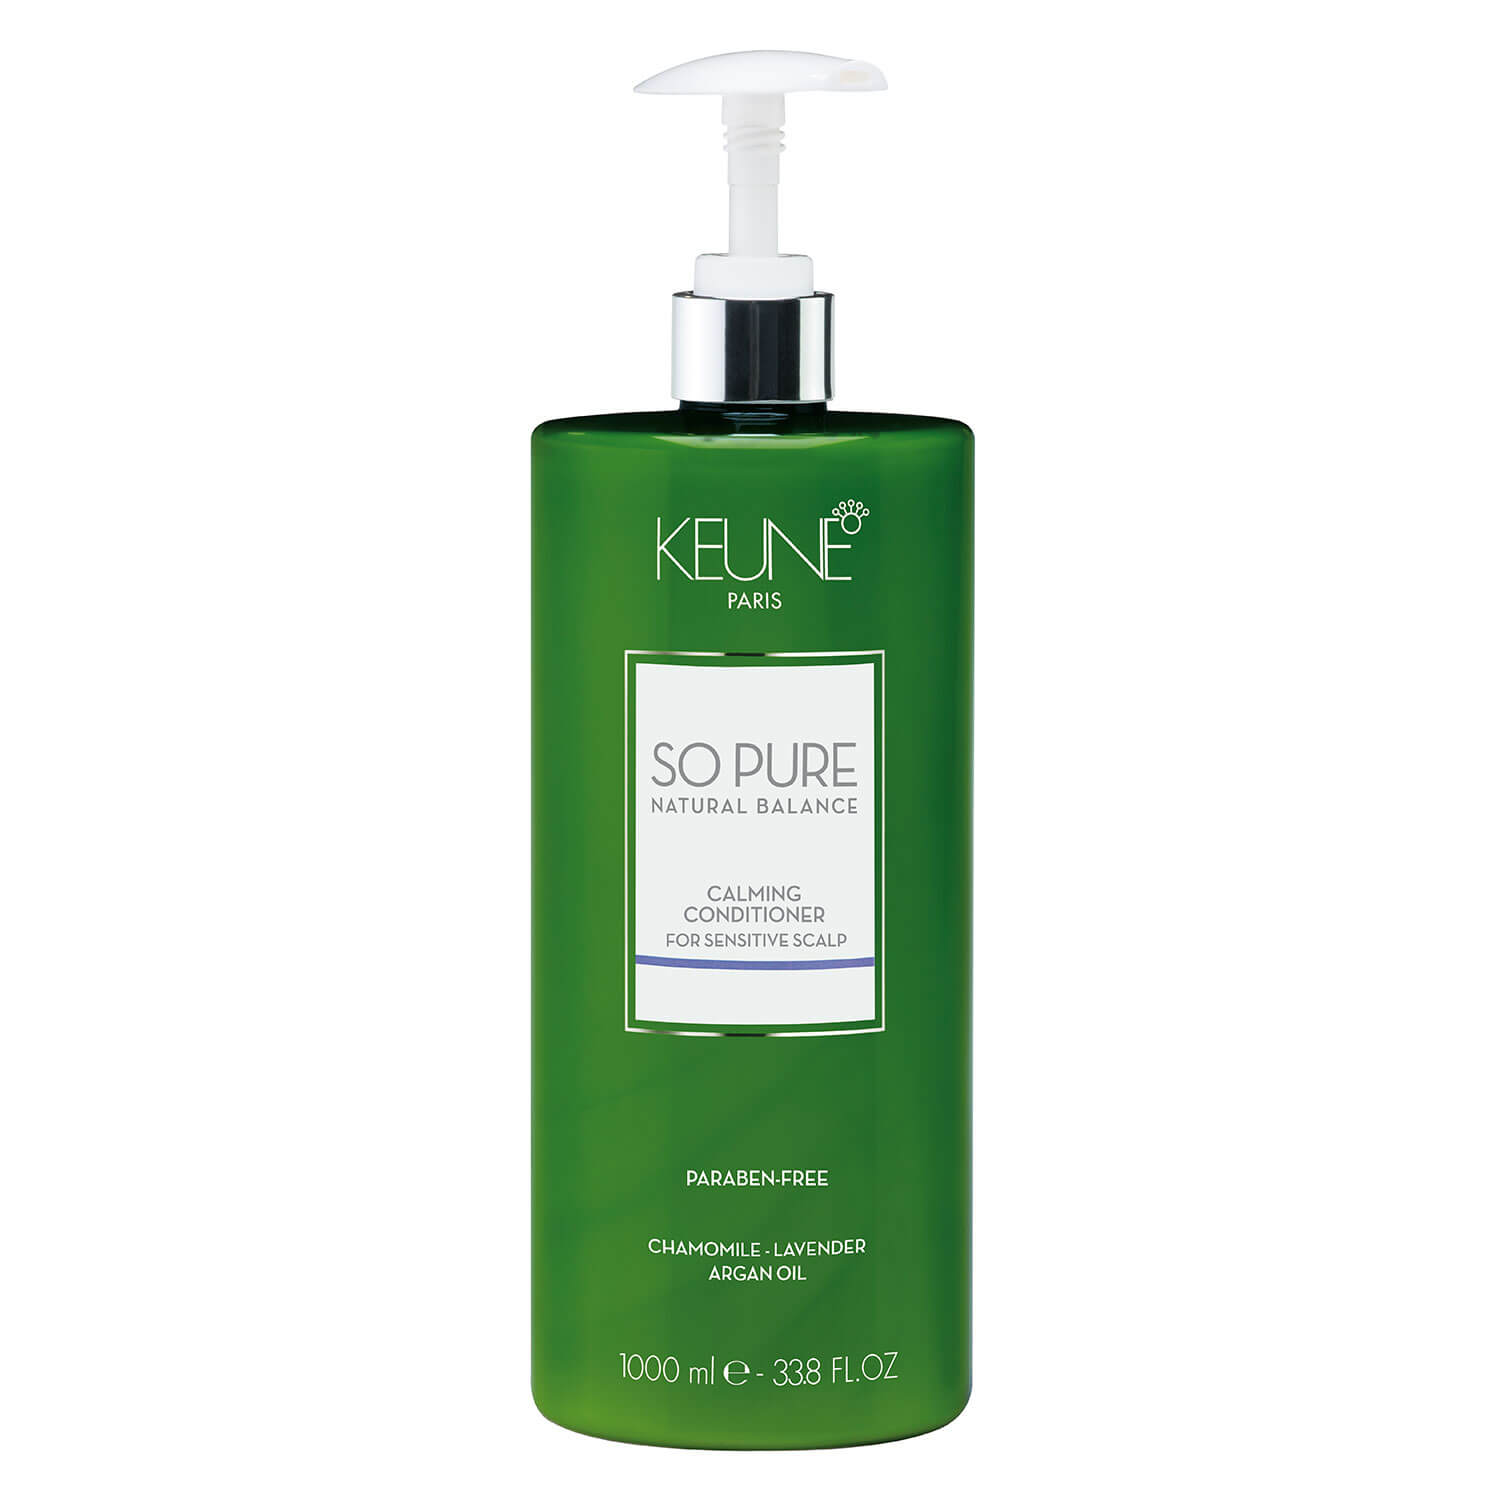 So Pure Calming - Conditioner